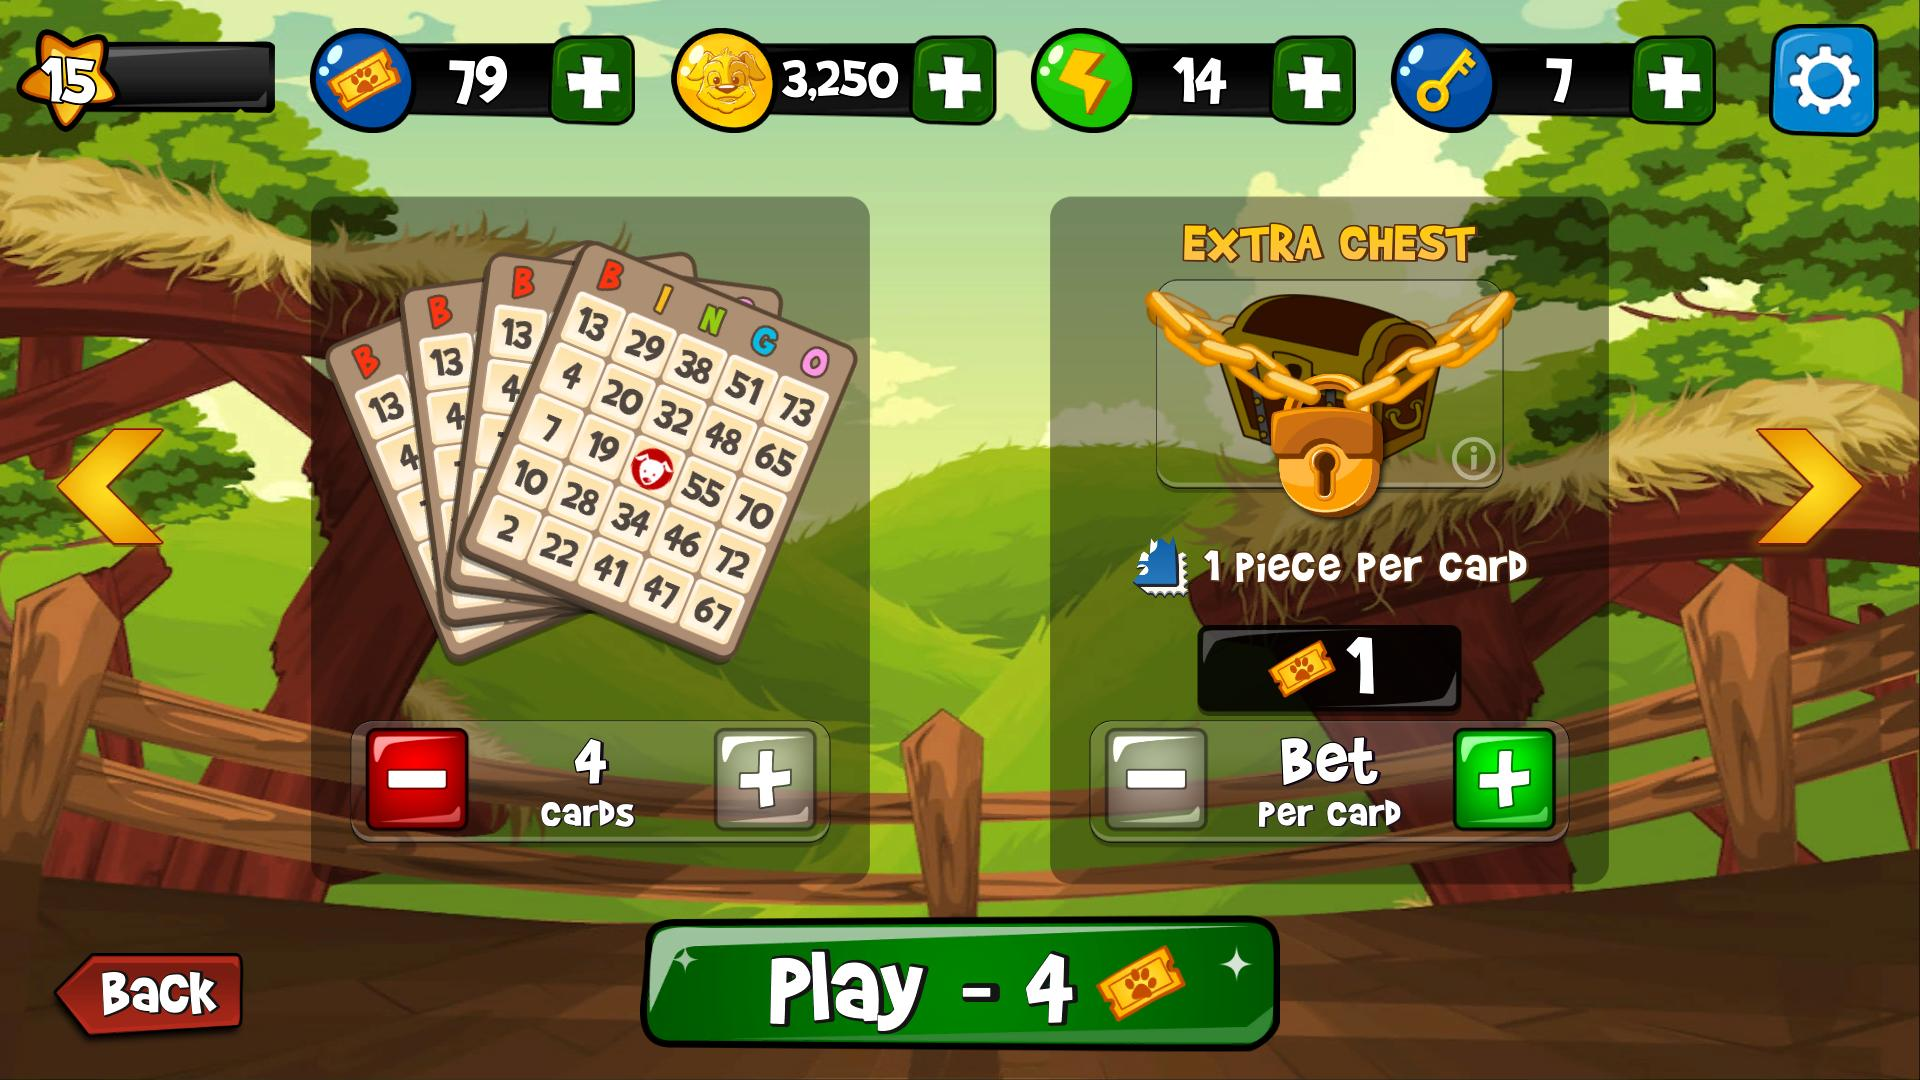 Bingo Abradoodle - Bingo Games Free to Play! 3.0.02 Screenshot 4